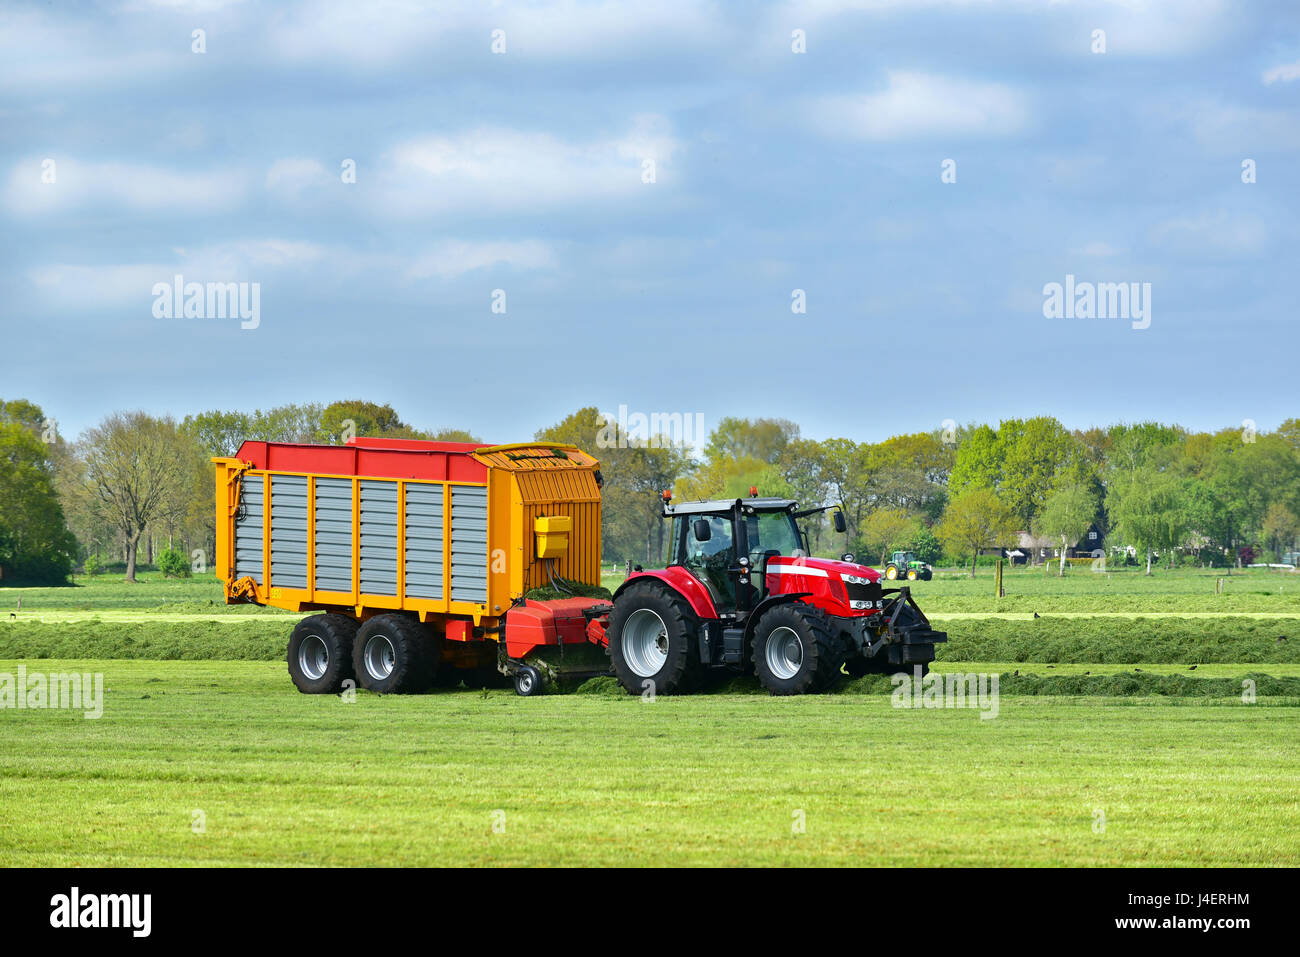 Tractor and a Self-loading and harvester-filled forage wagon collecting mowed grass. - Stock Image